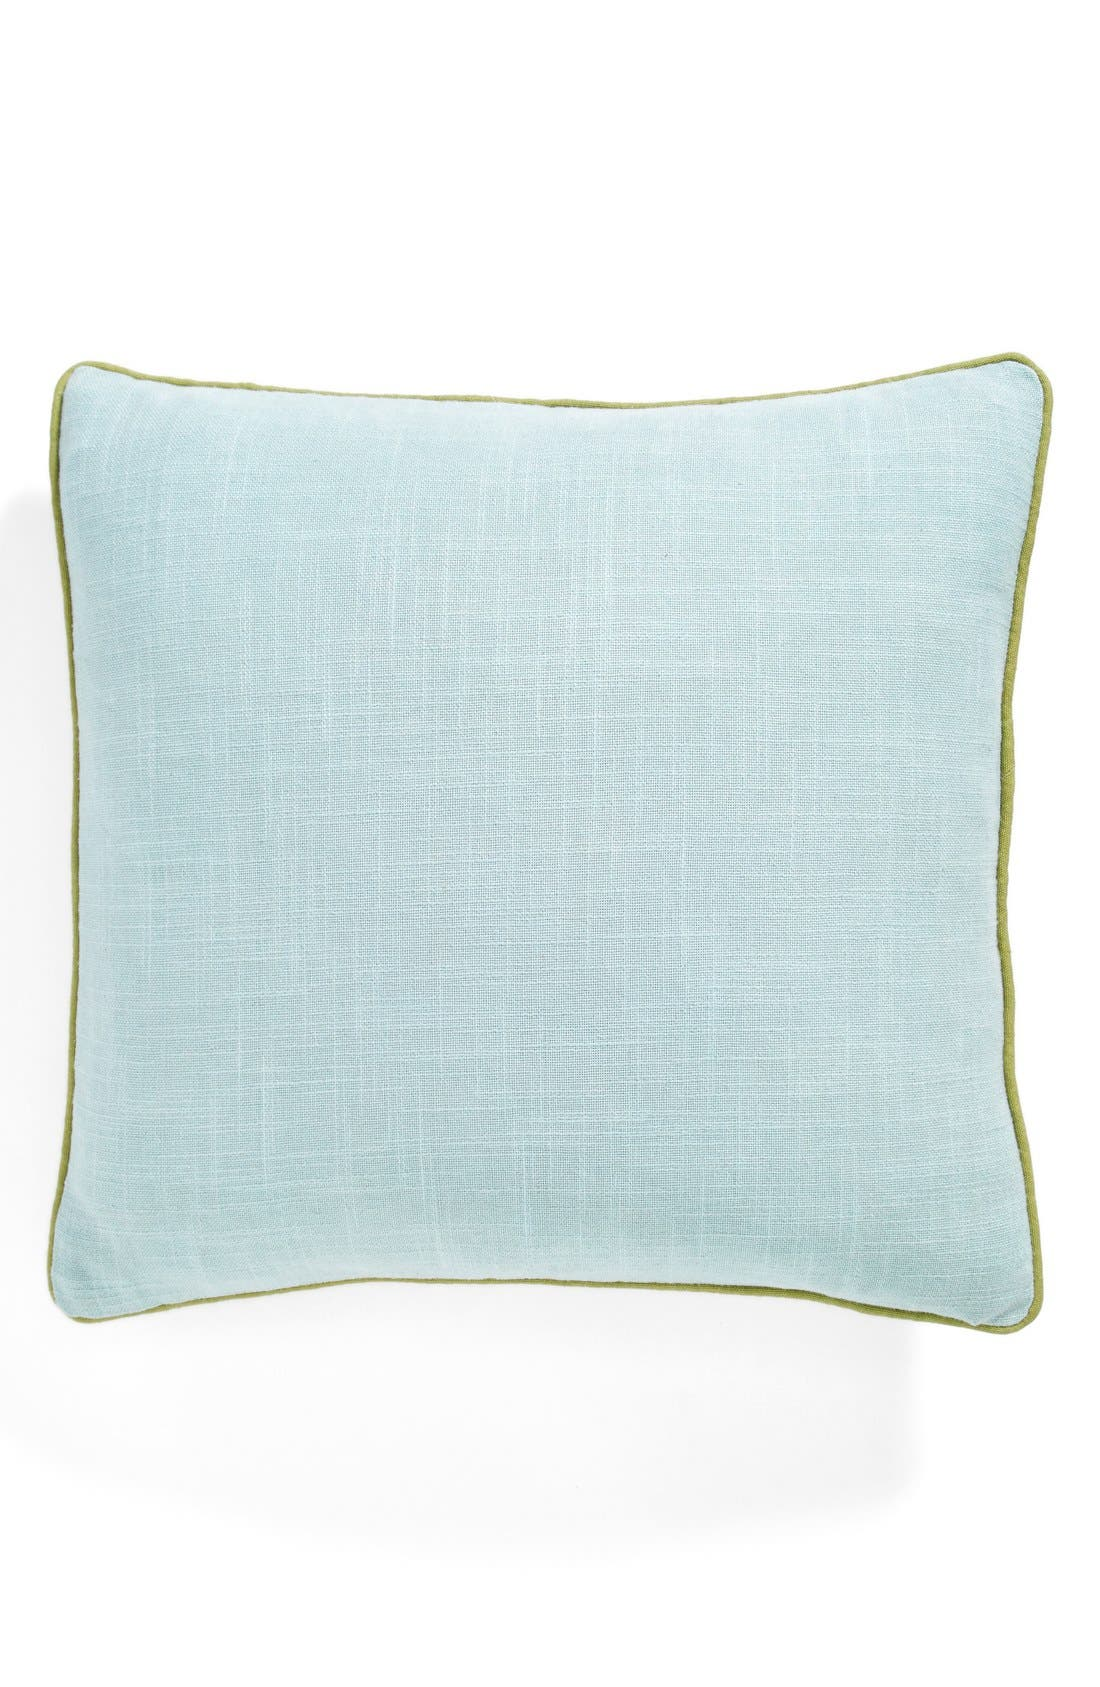 Alternate Image 1 Selected - Nordstrom at Home 'Erin' Pillow